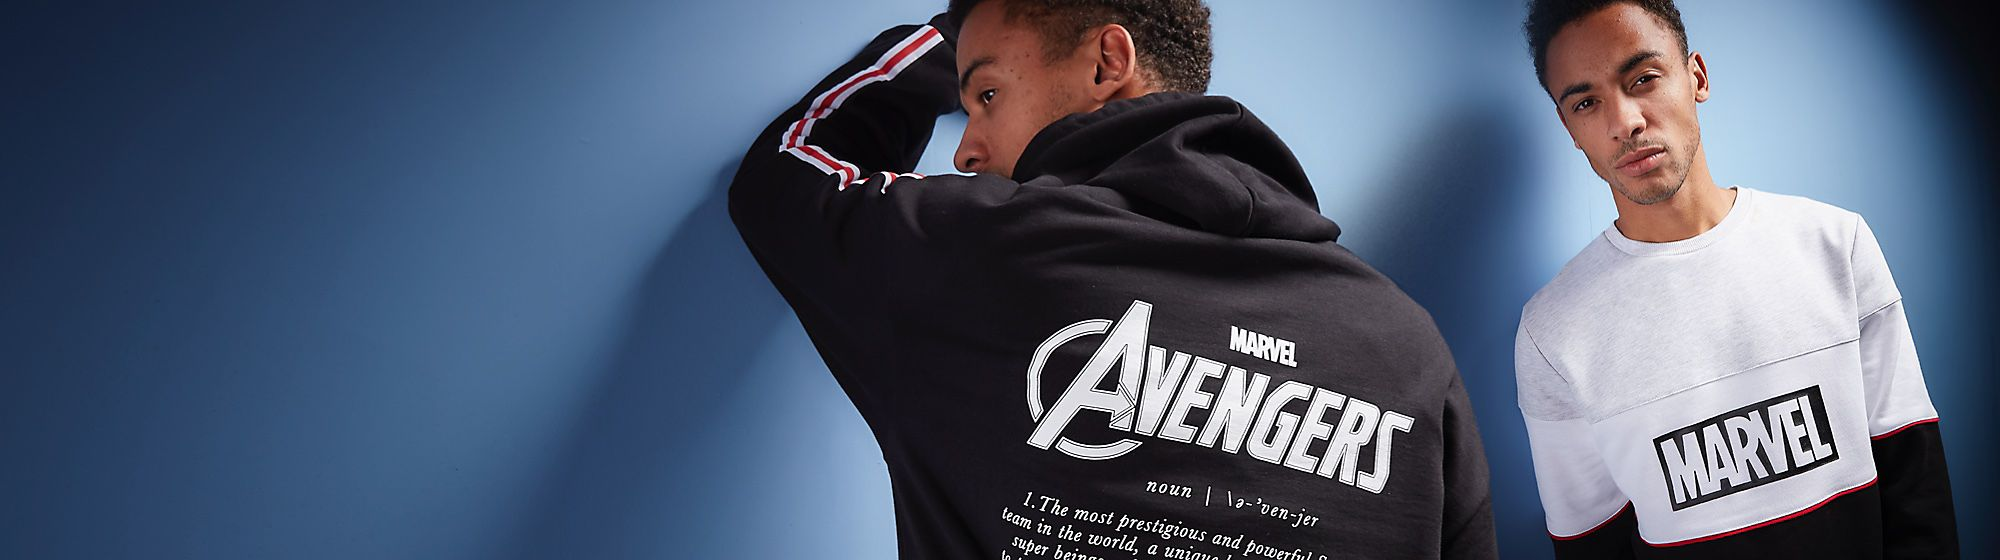 Men's Fashion Check out the latest trends in Disney style. Shop the new range of men's clothes, shoes, accessories and more SHOP NOW